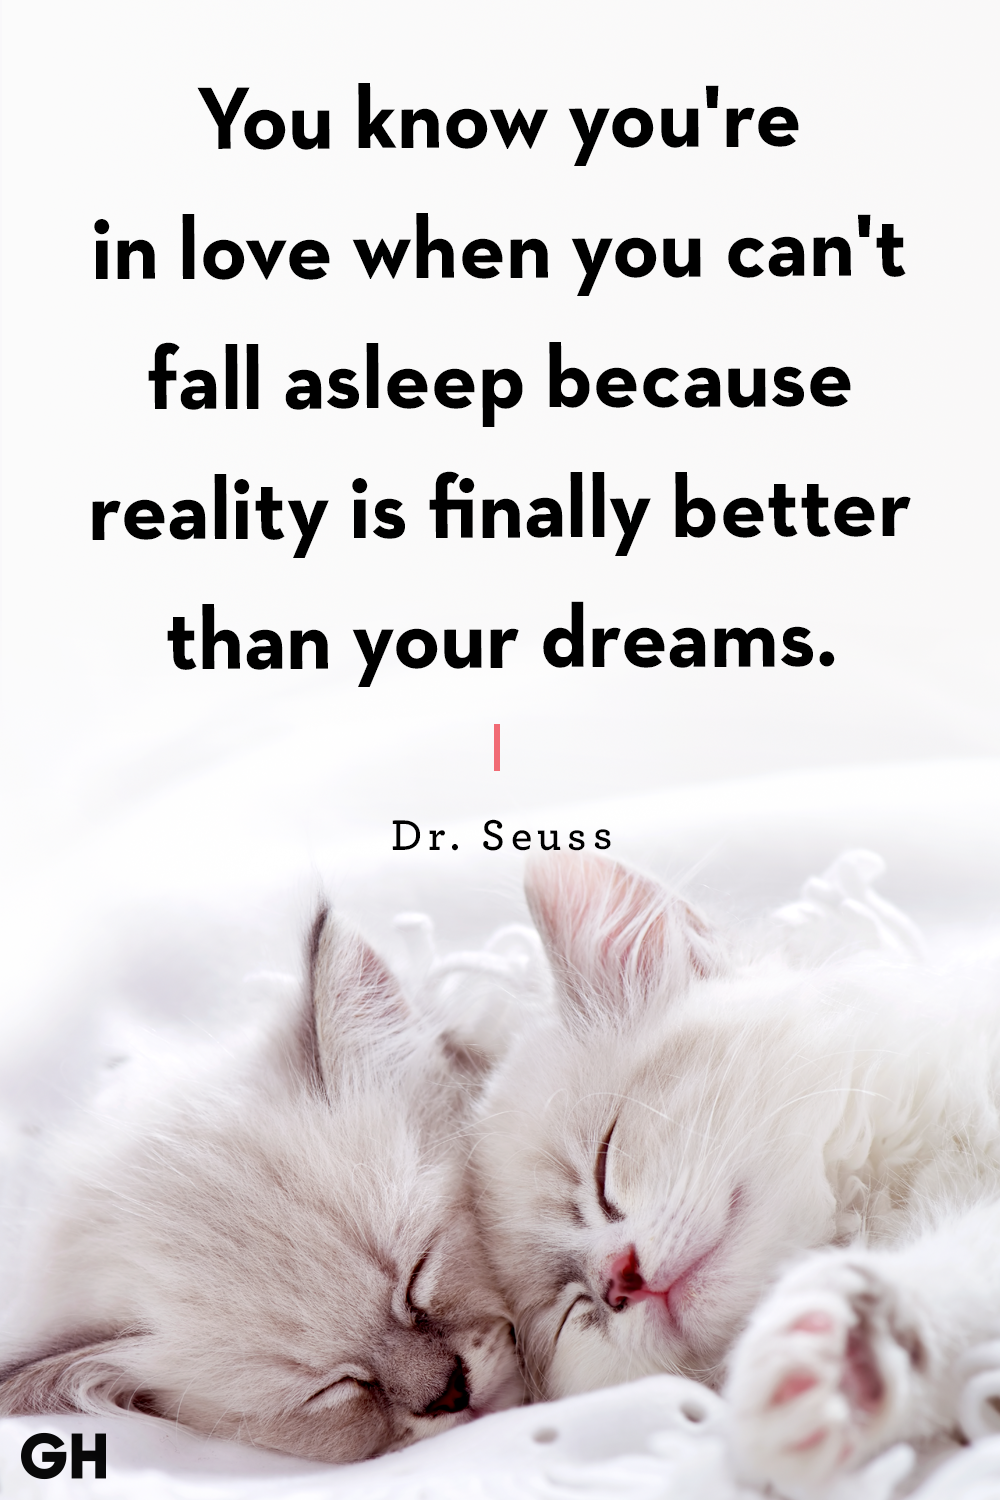 20 Sleep Quotes - Cute Good Night Quotes